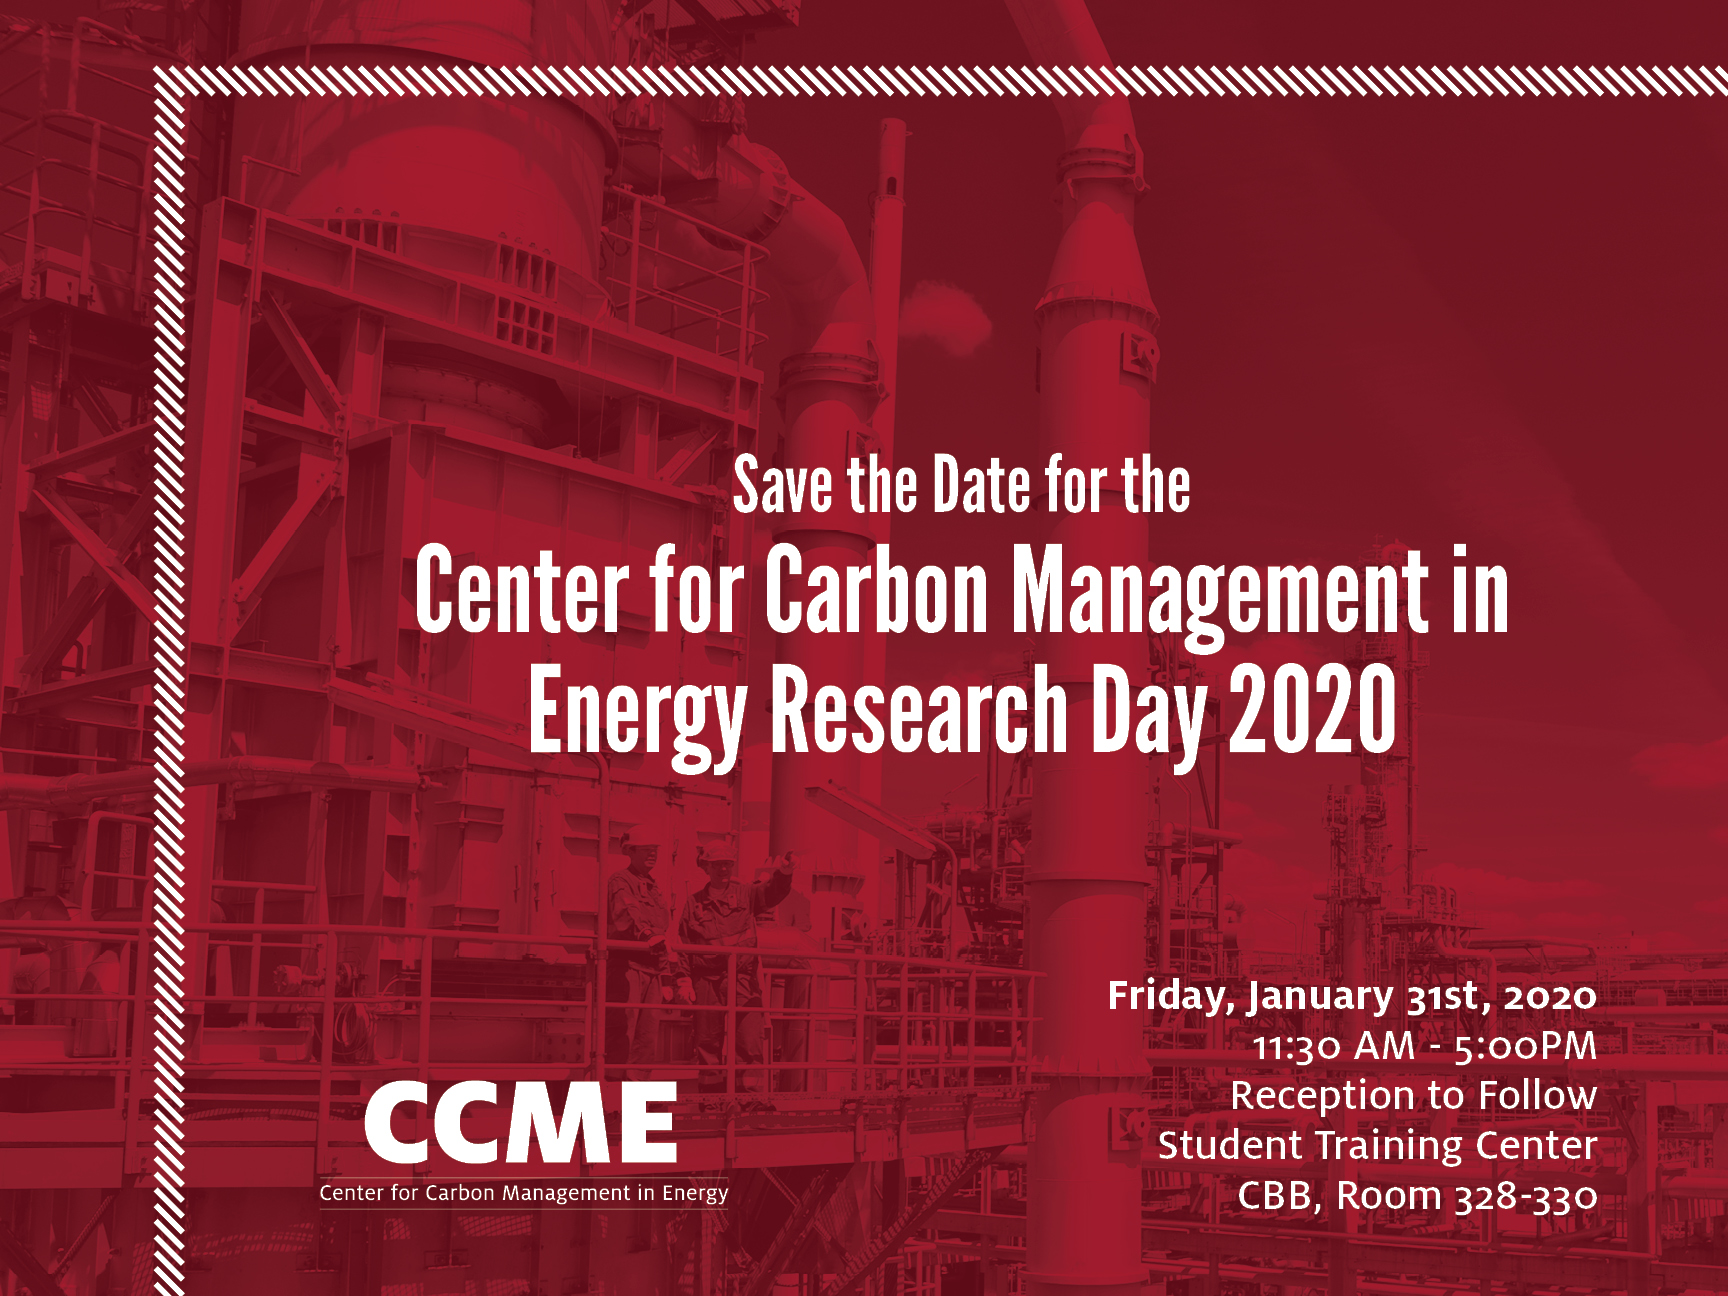 CCME Research Day Banner Image